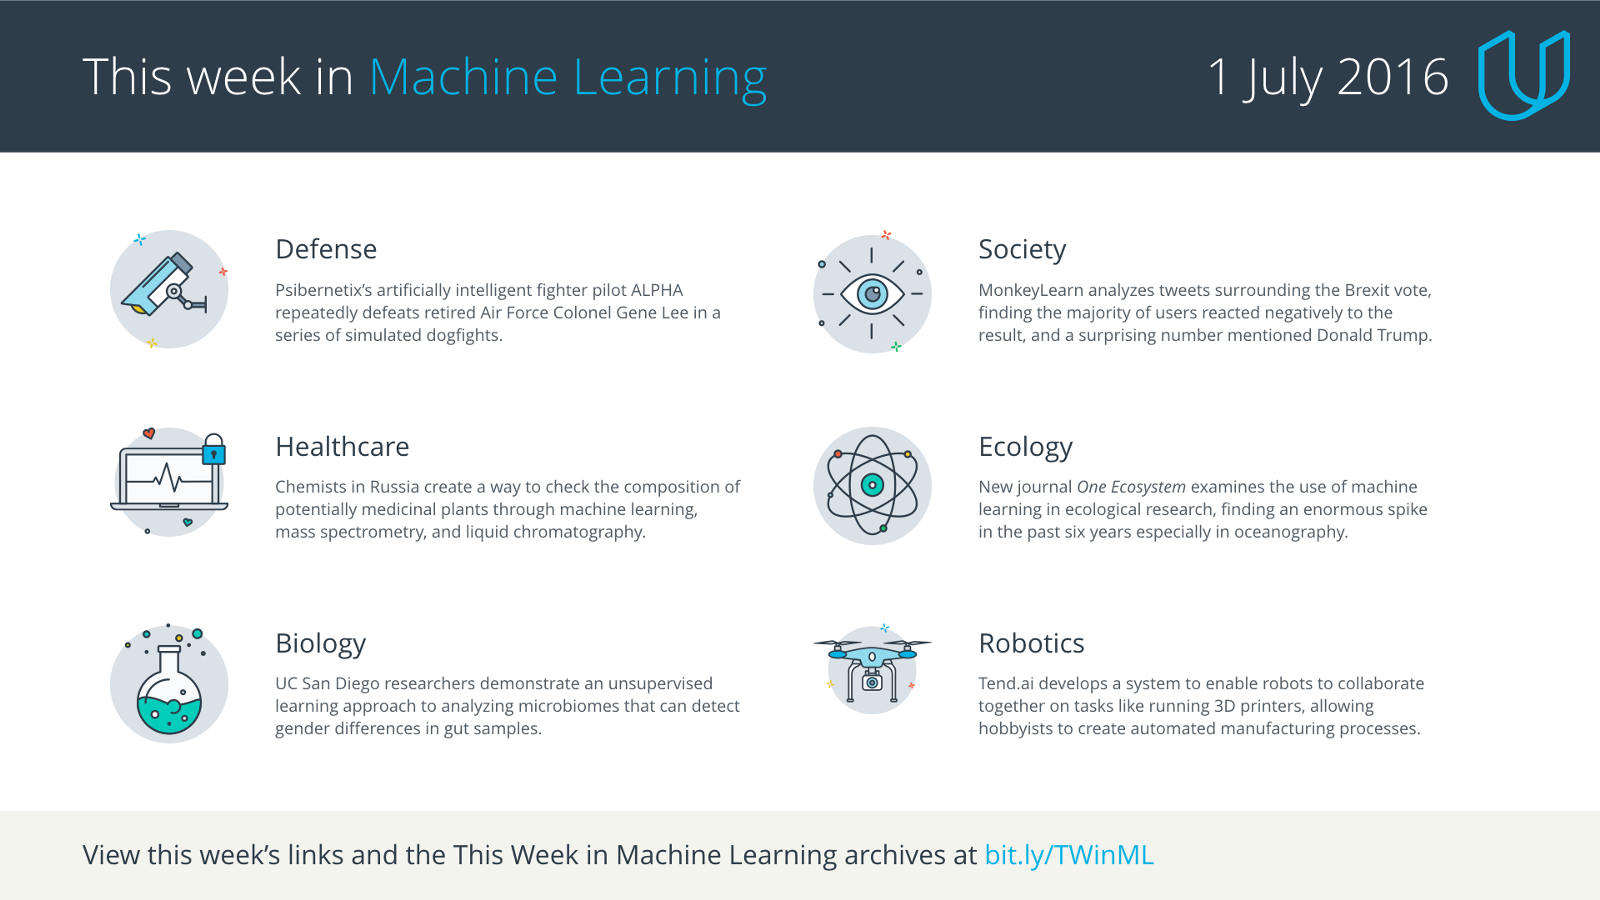 This Week in Machine Learning, 1 July 2016